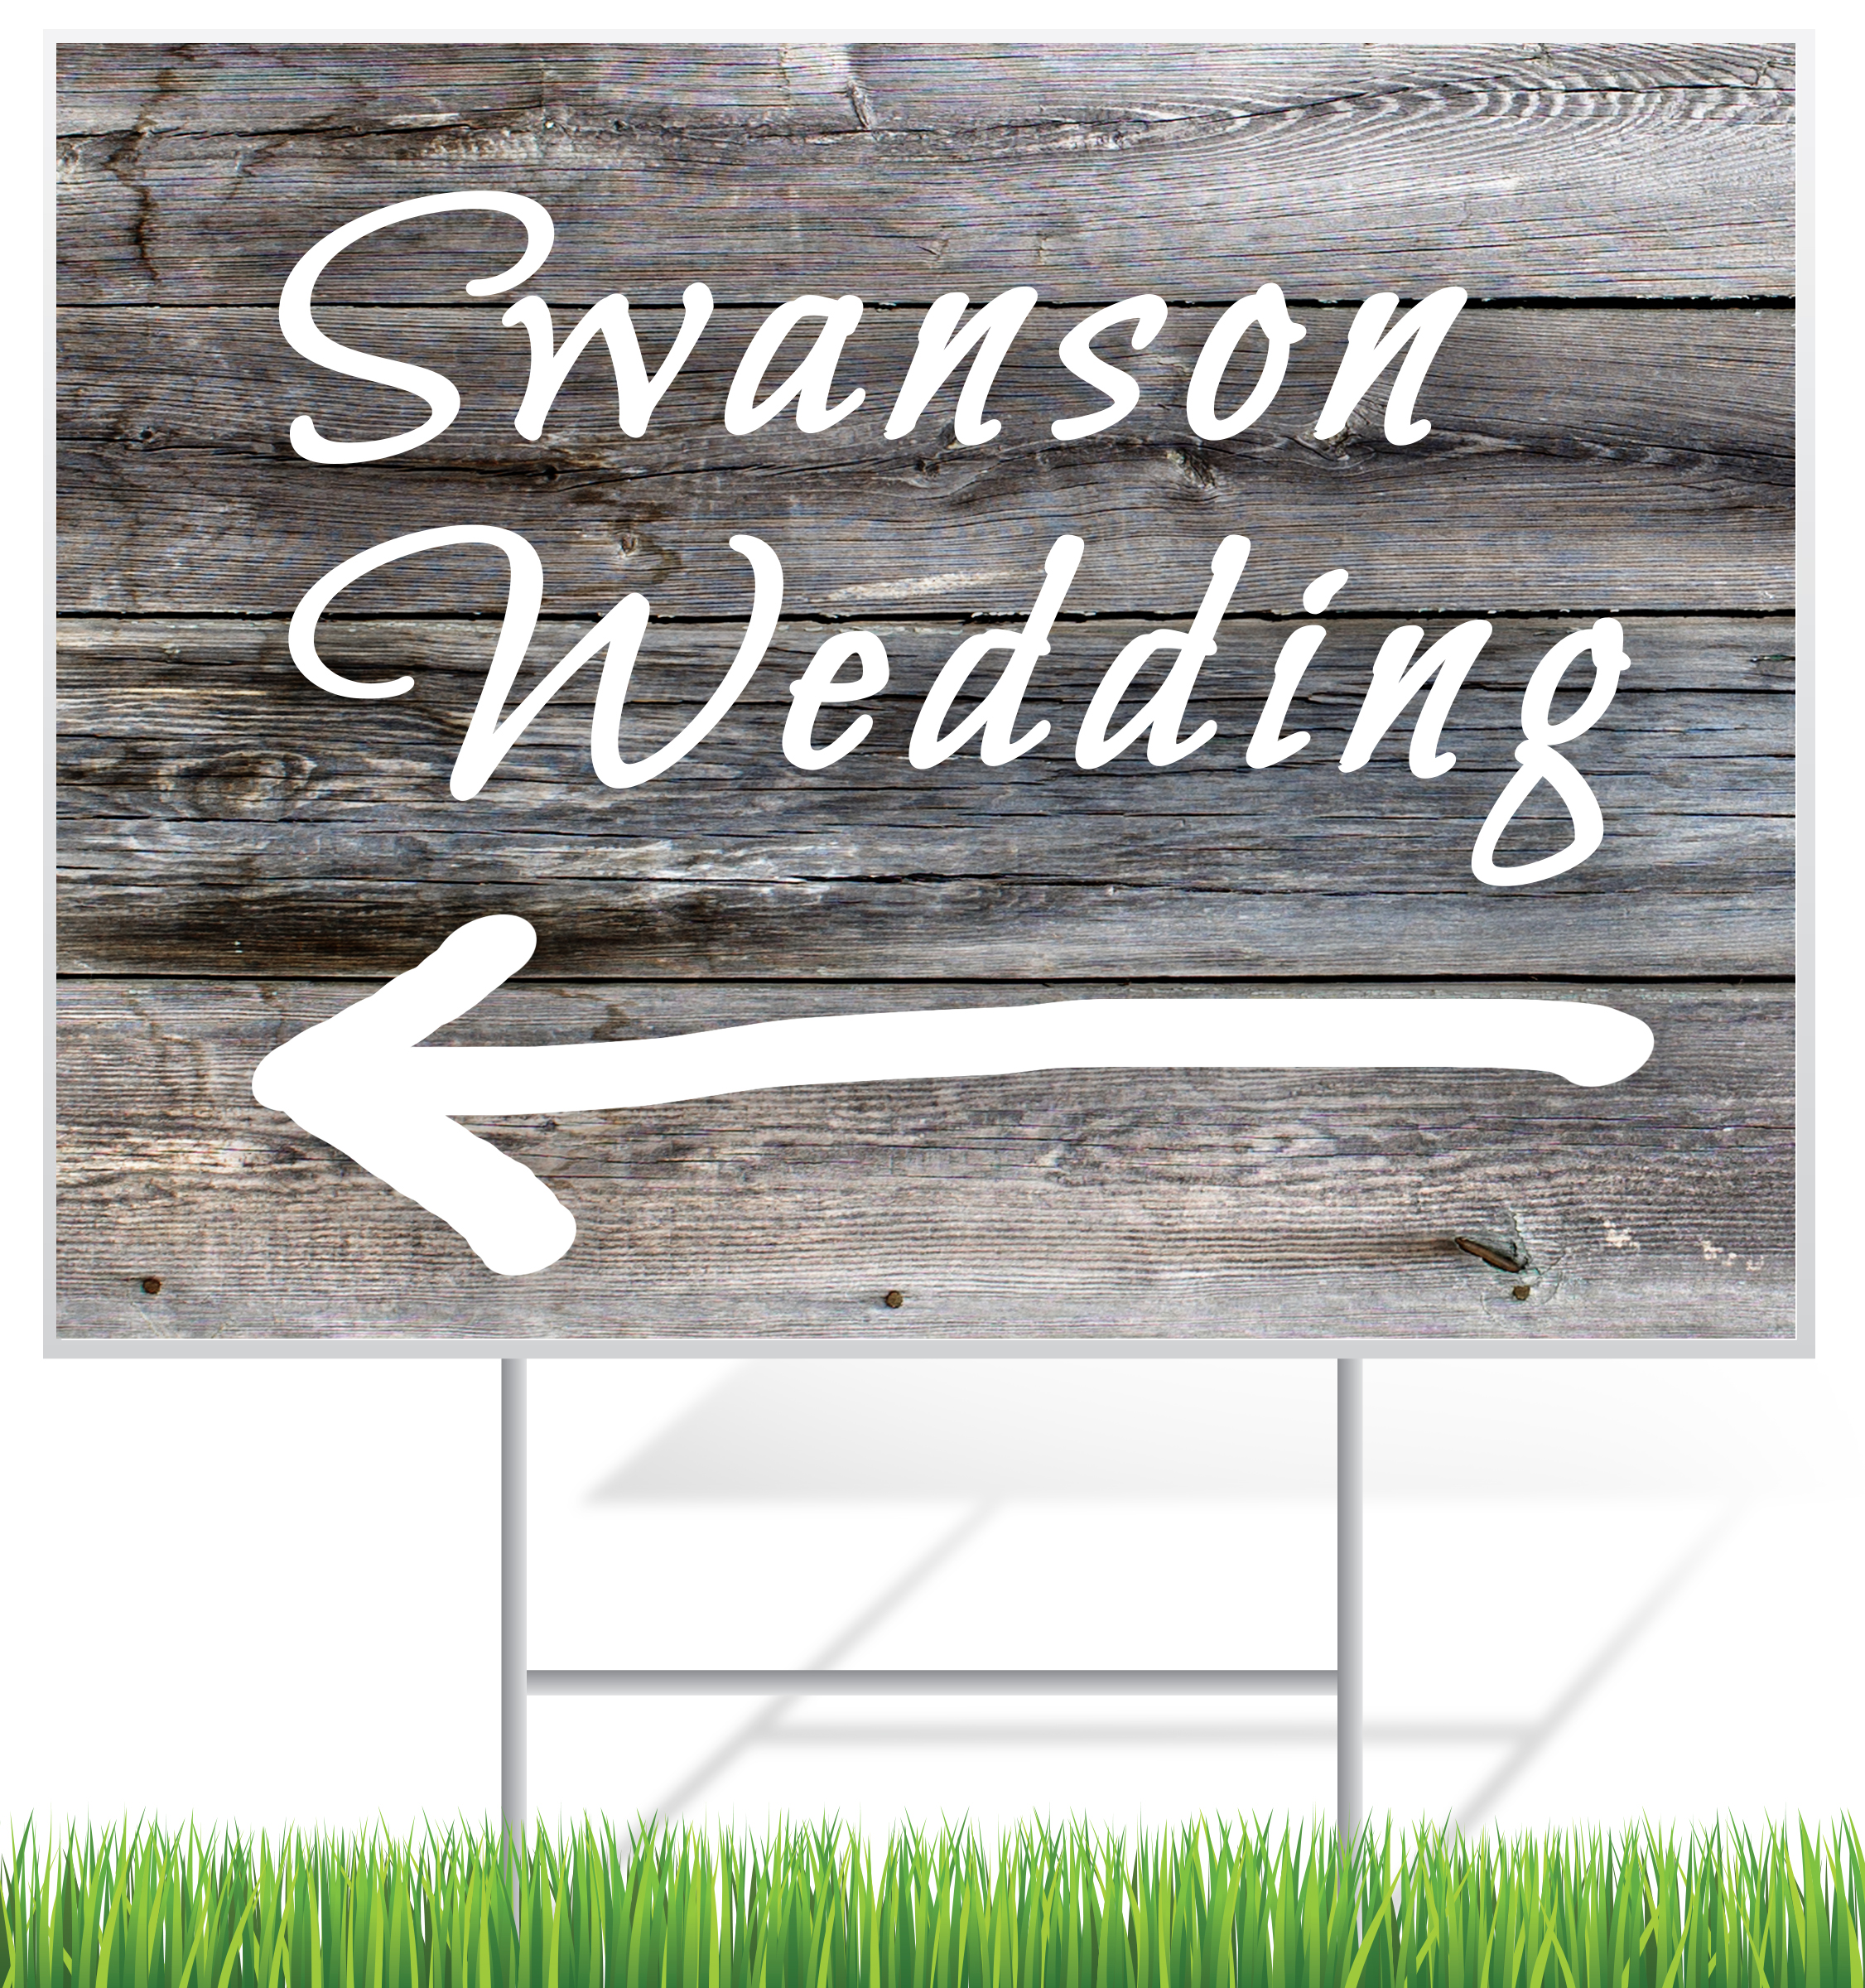 Wedding Yard Signs | Signline.com